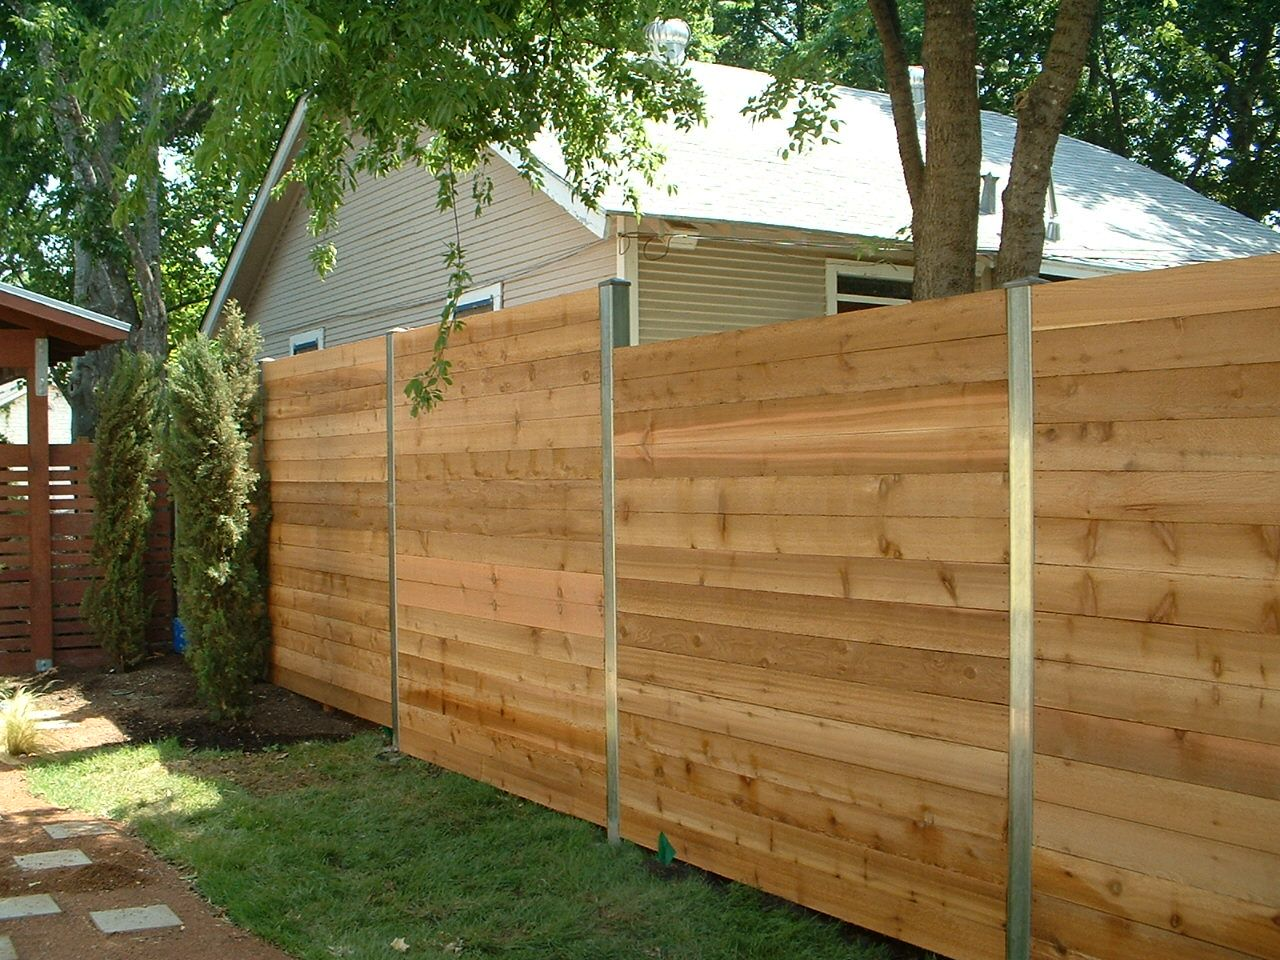 Wood Fences Gallery Privacy Fence Designs Fence Design Modern